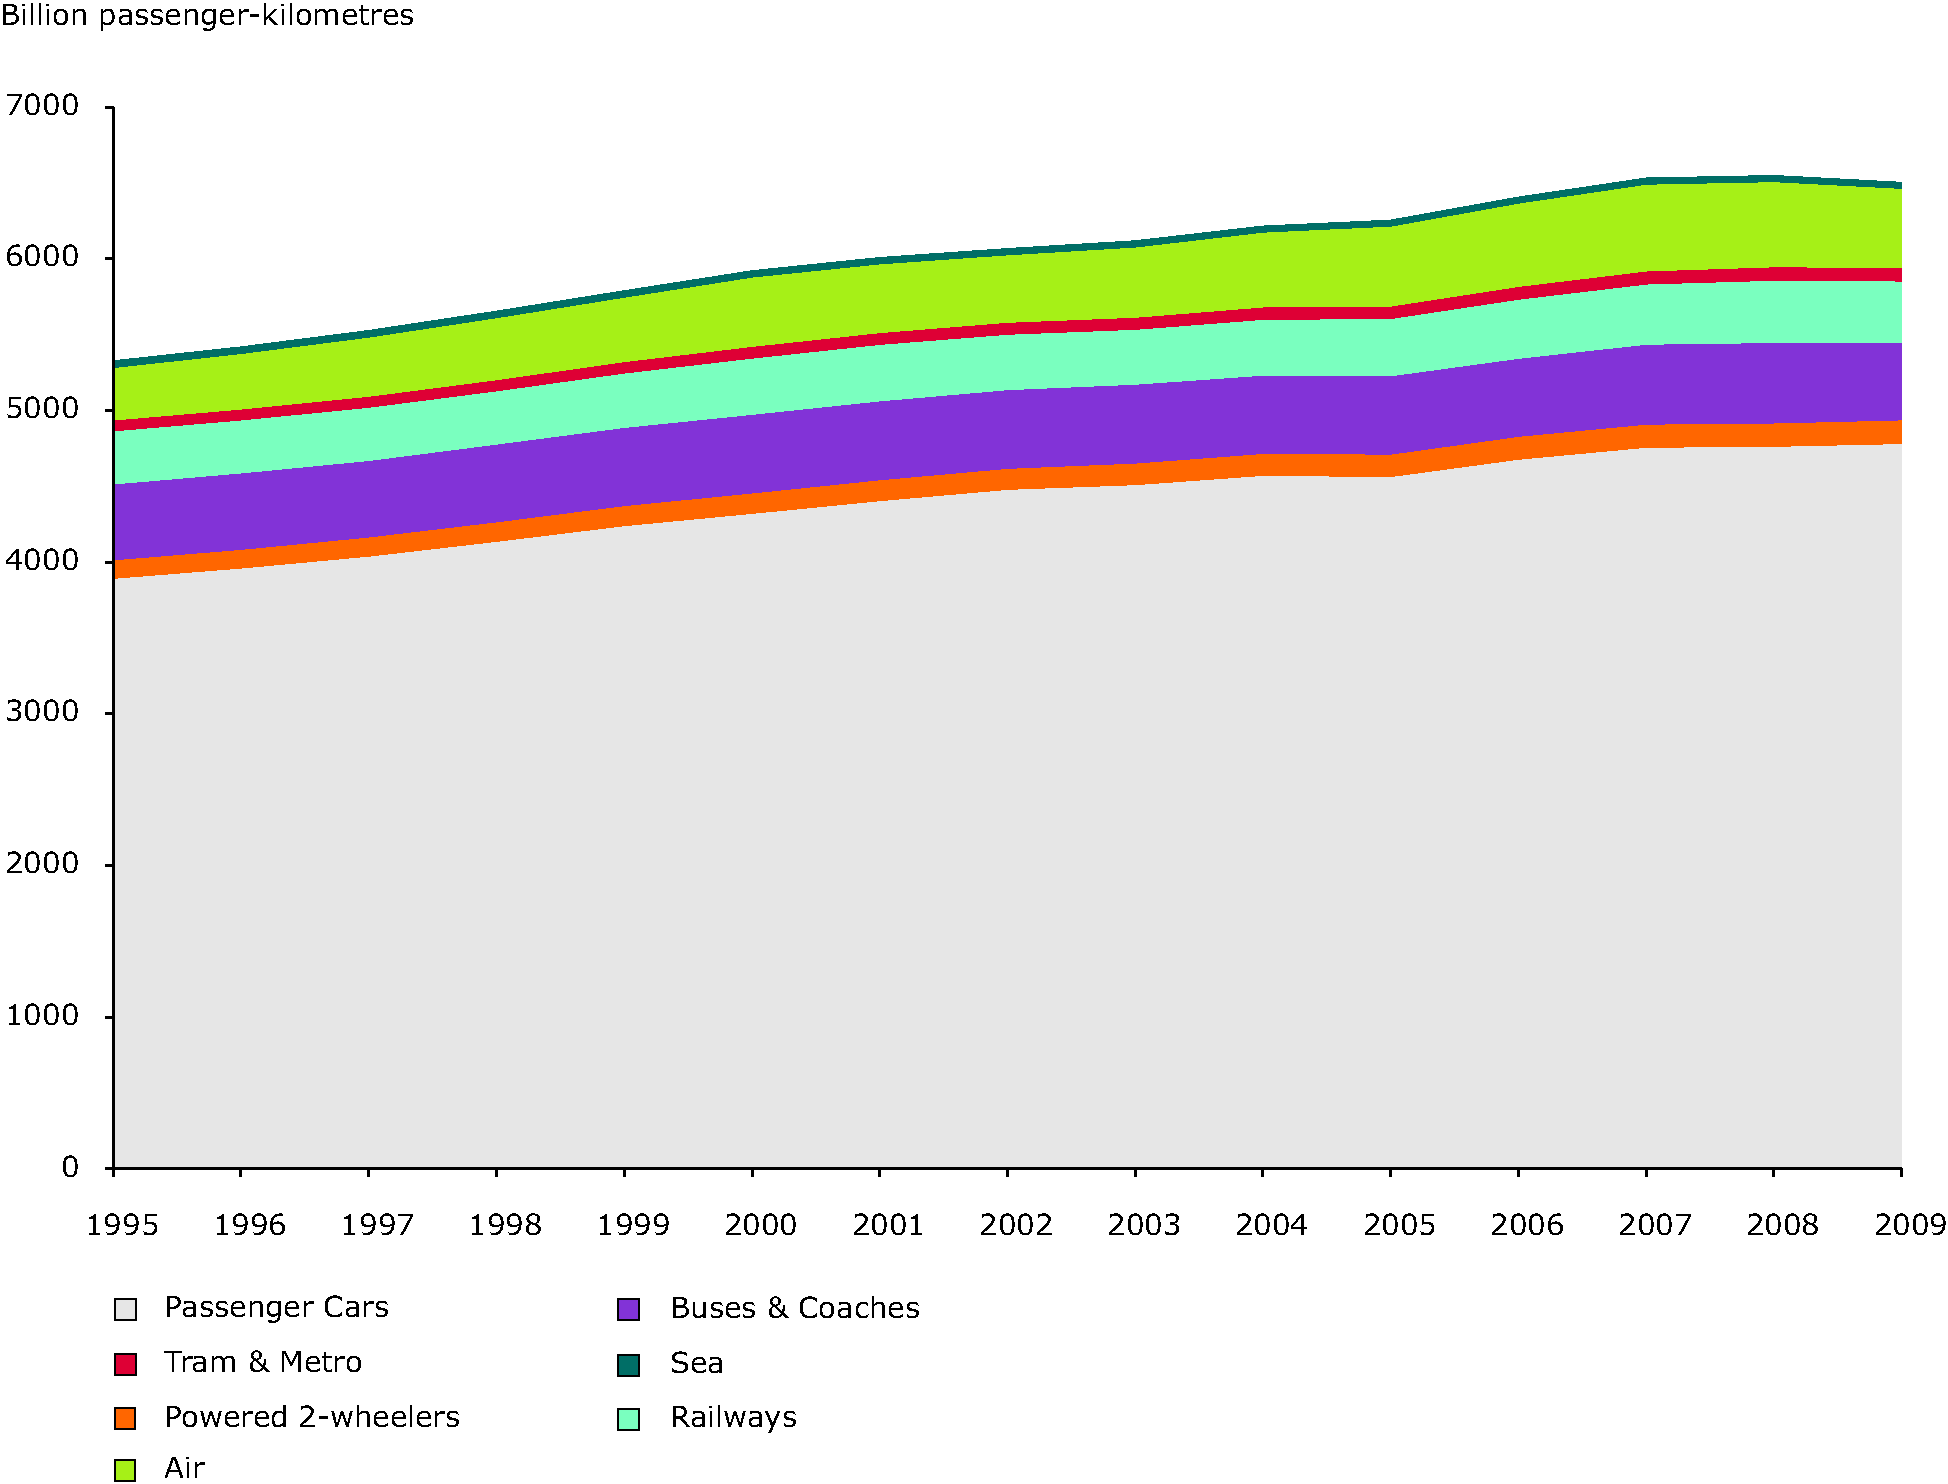 Trends in passenger transport demand by mode